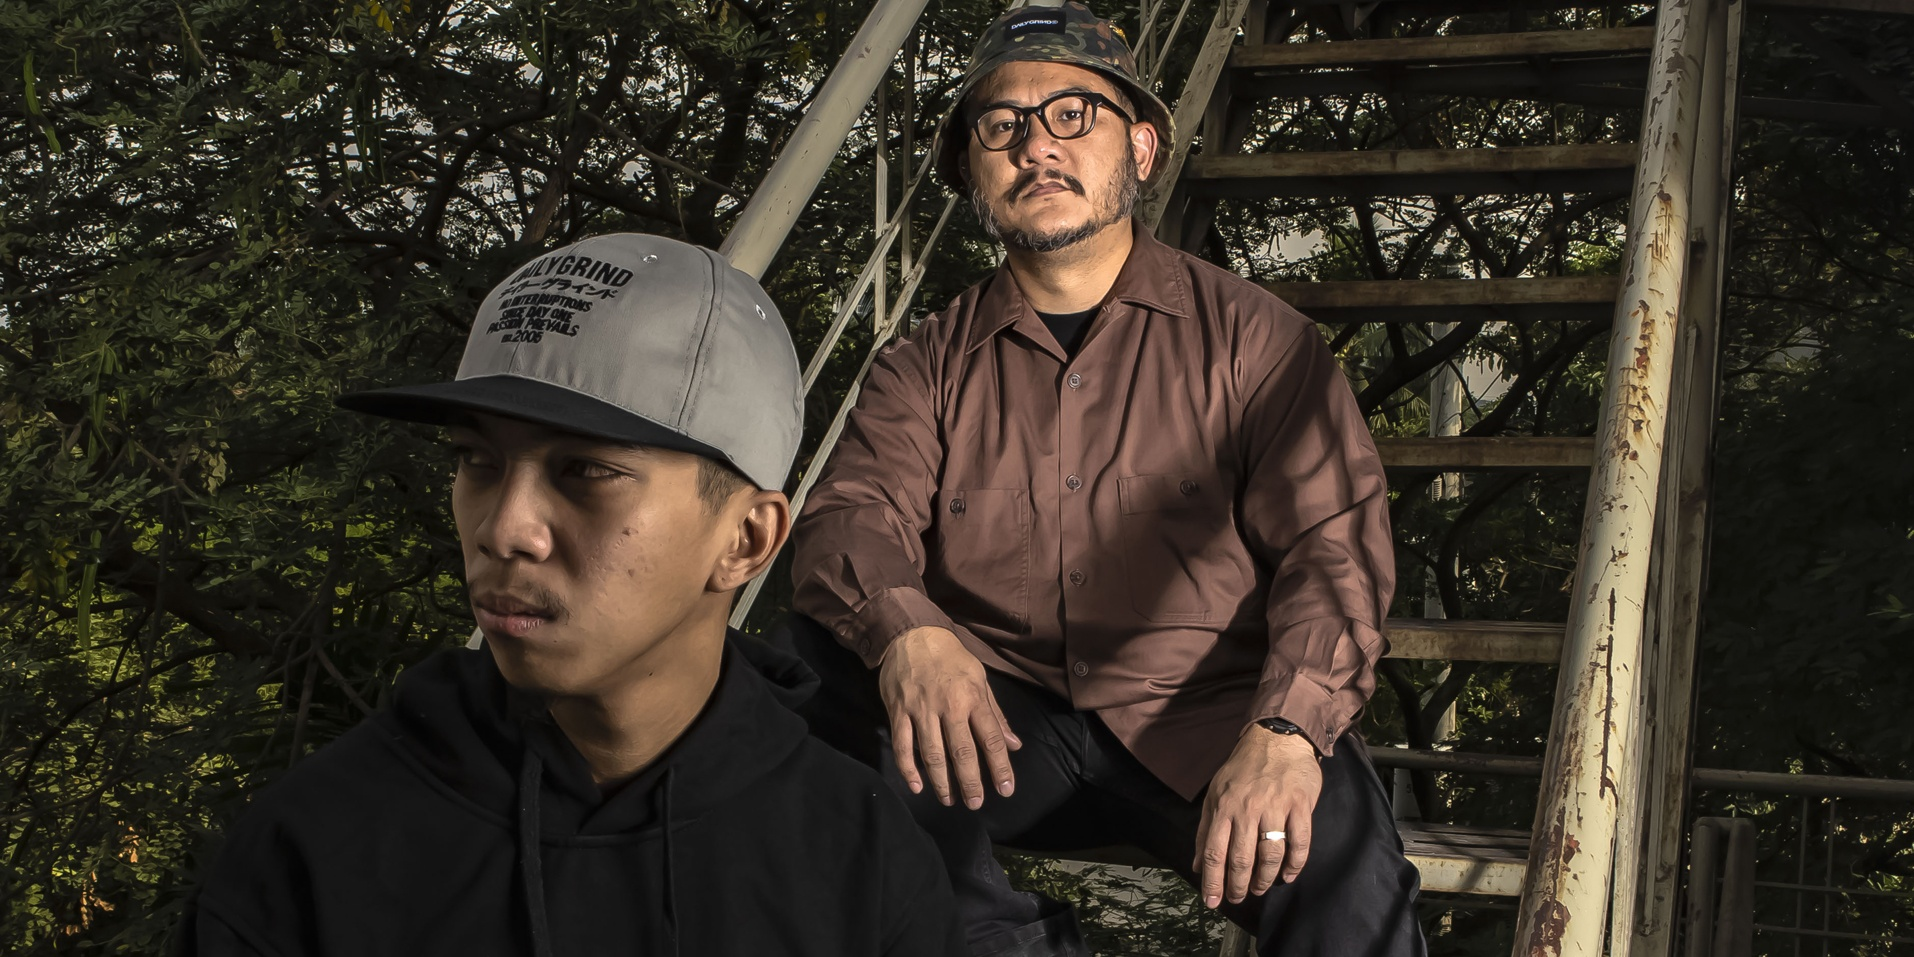 KJah and Juss Rye to hold 'Pamantayan' music video launch